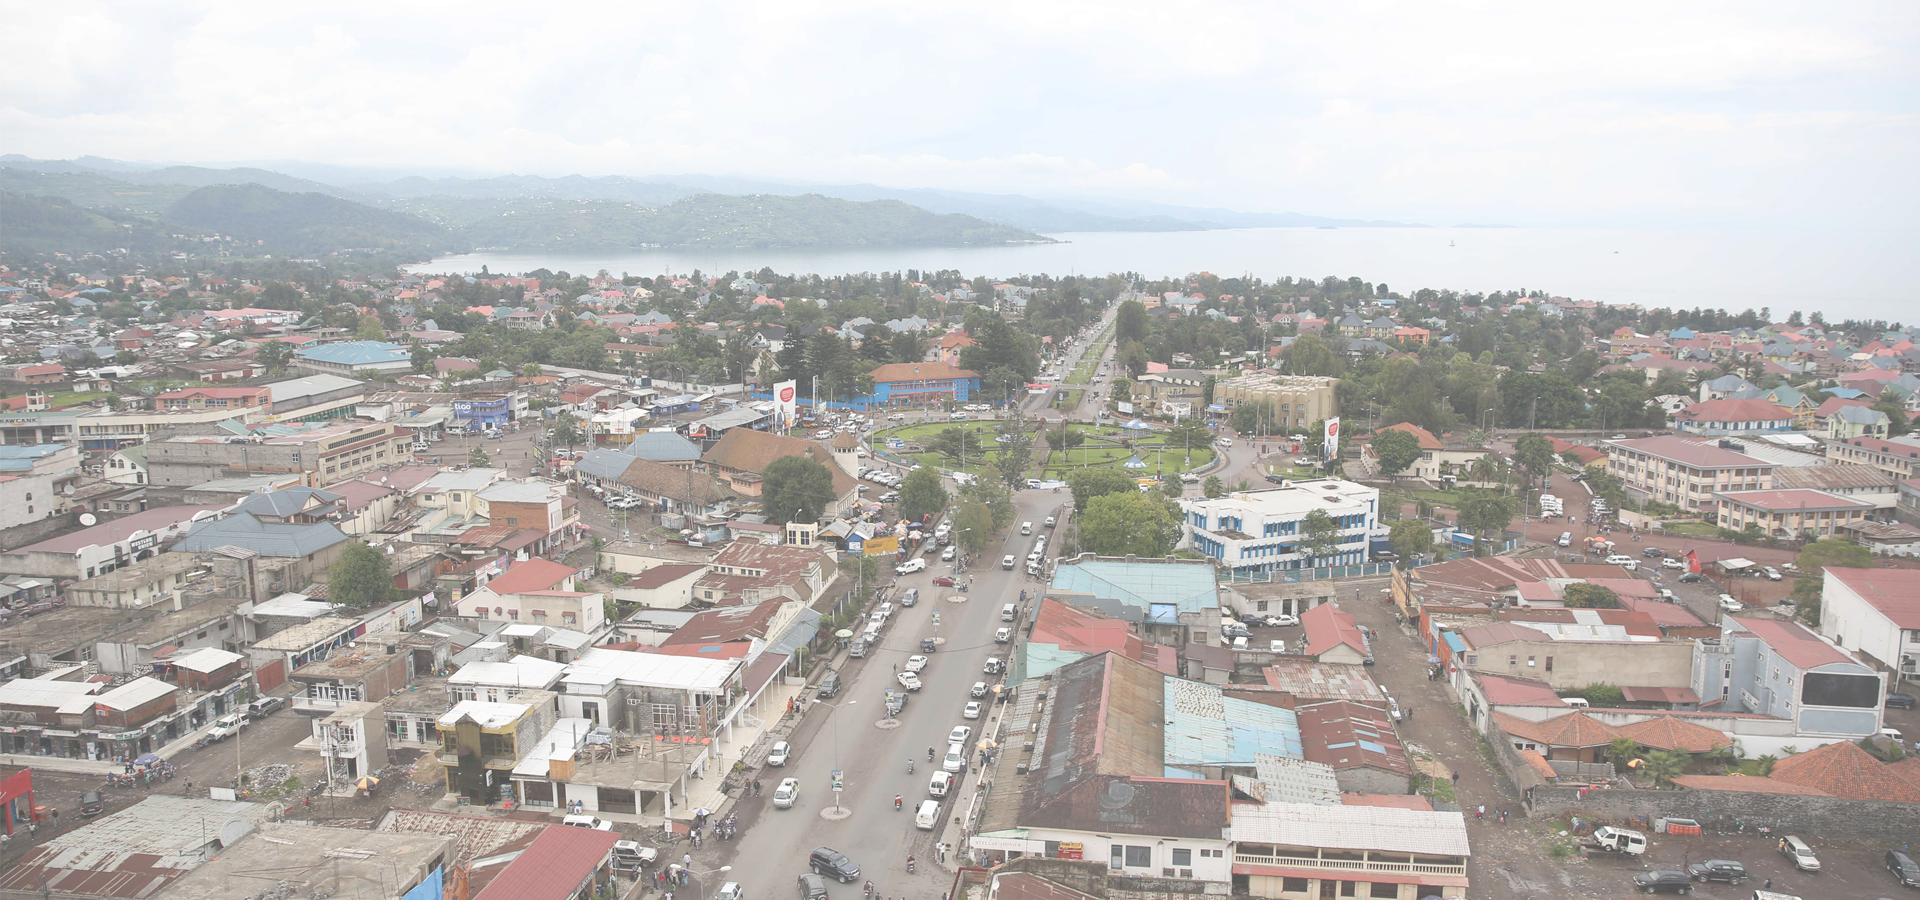 Peer-to-peer advisory in Goma, North Kivu Province, Democratic Republic of the Congo